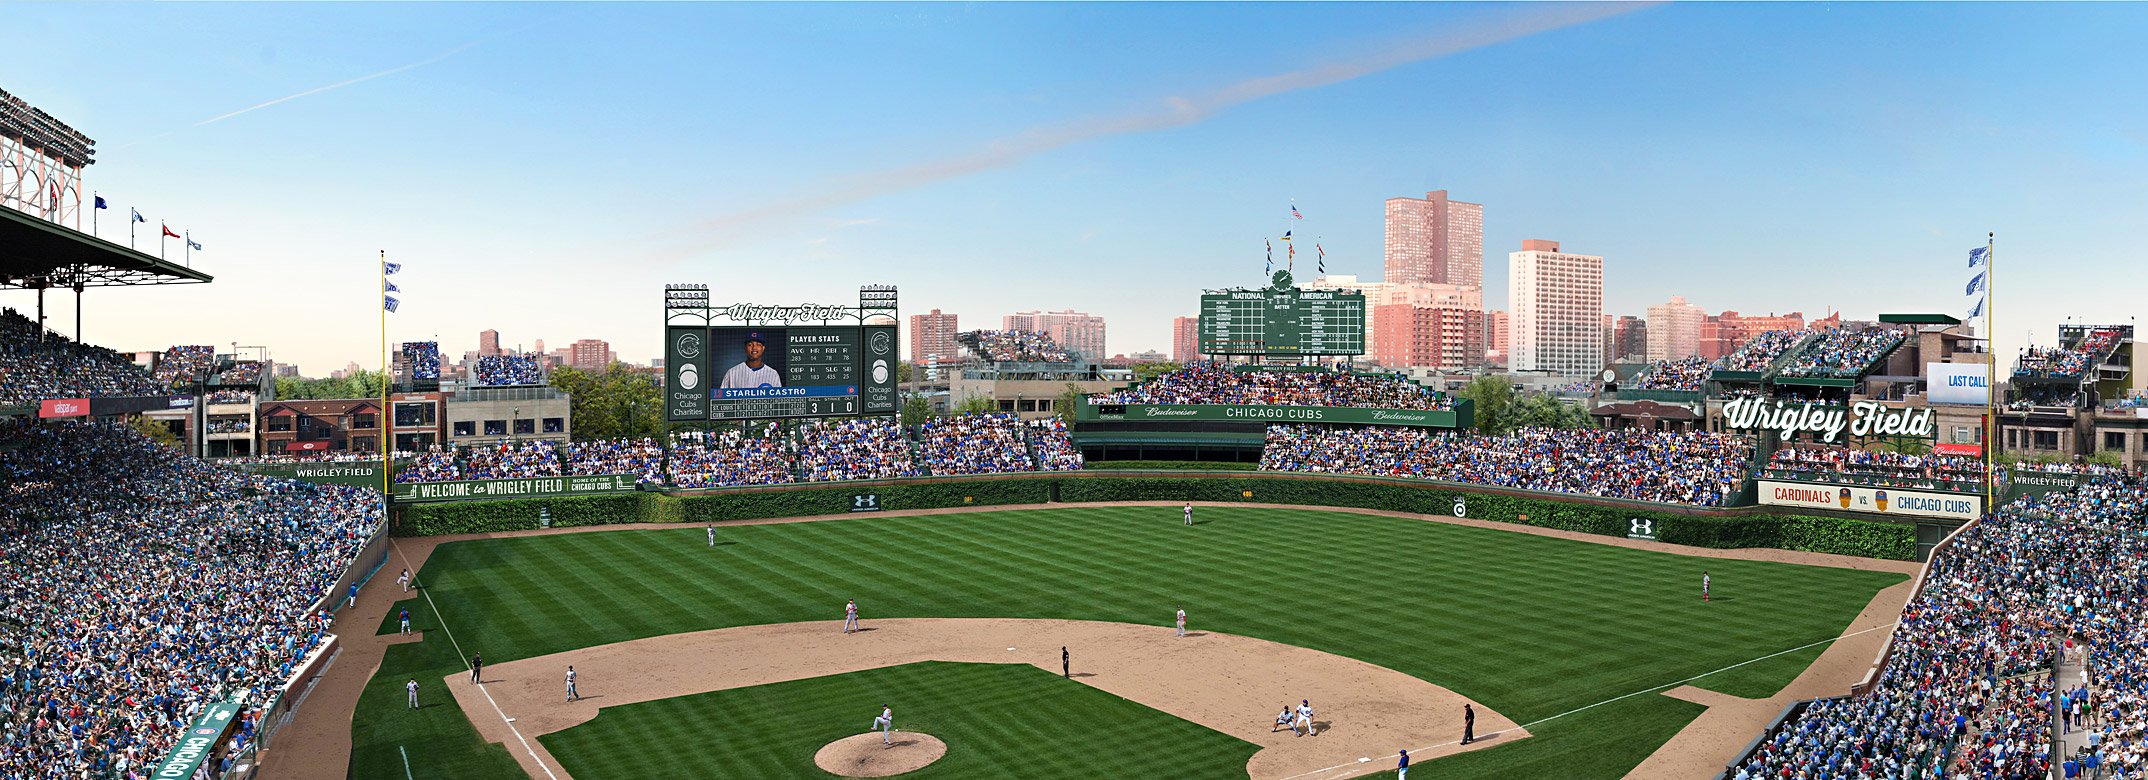 Wrigley Renderings - Panoramic Day